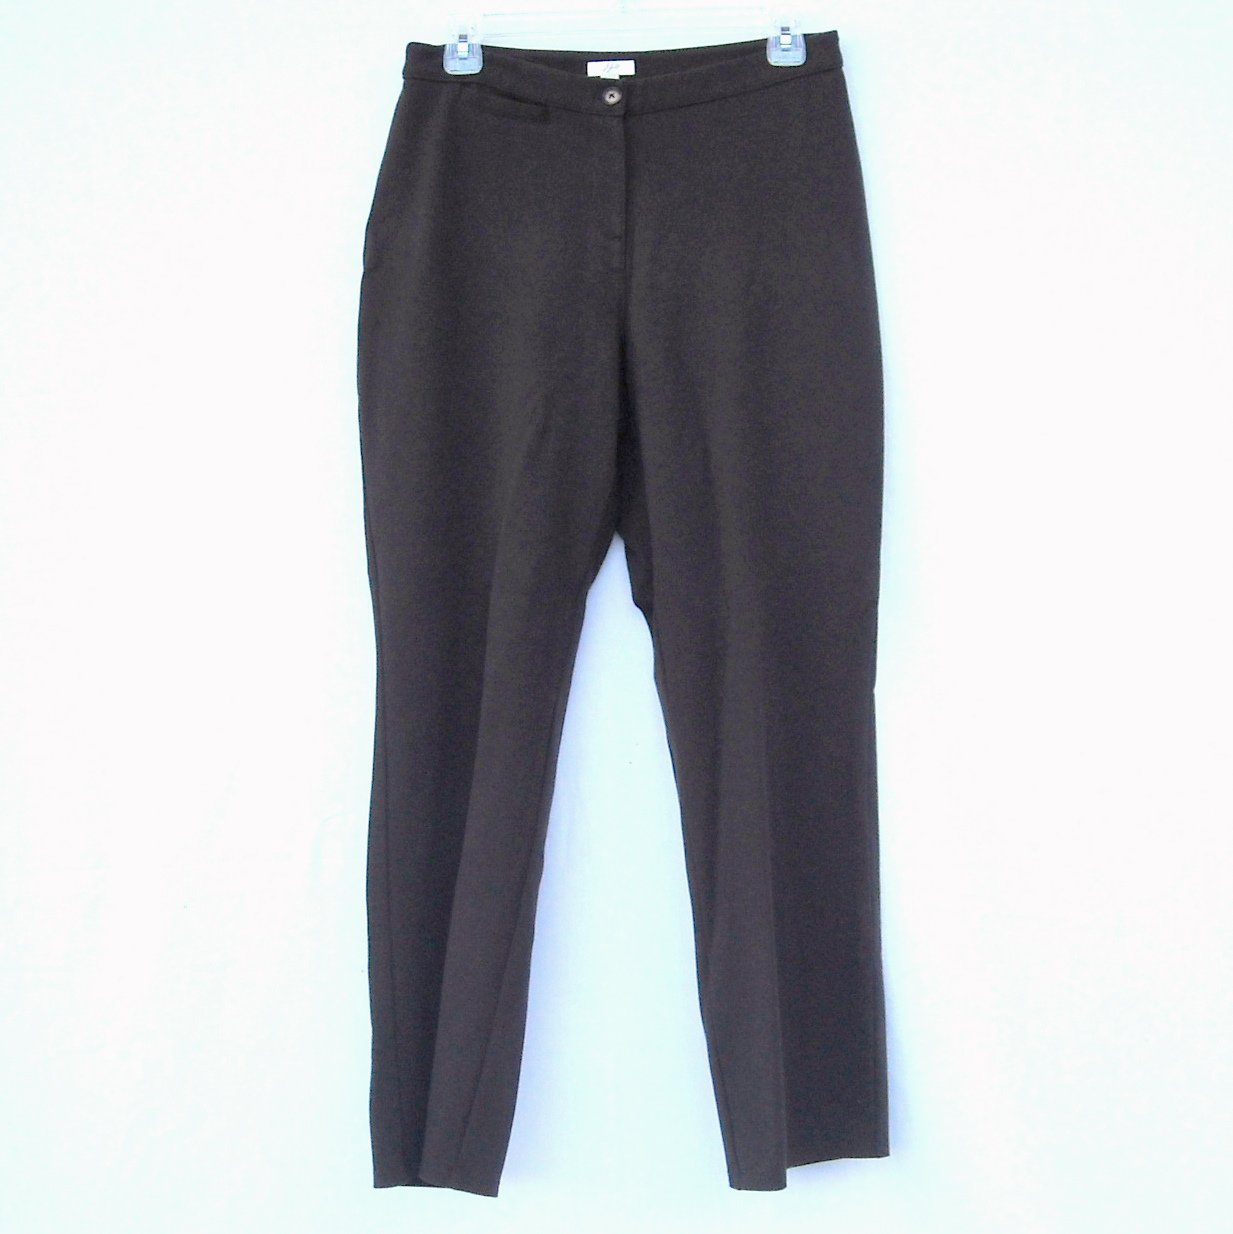 Amazing Look Your Best In These Petite Napa Valley Dress Pants The Slim, Straightleg Design From The Waist To Leg Opening Provides A Flattering, Polished Fit SloanFit Slim Ankle Pant  Pants I Think Also Worth It To Try Their Version Of The Slim